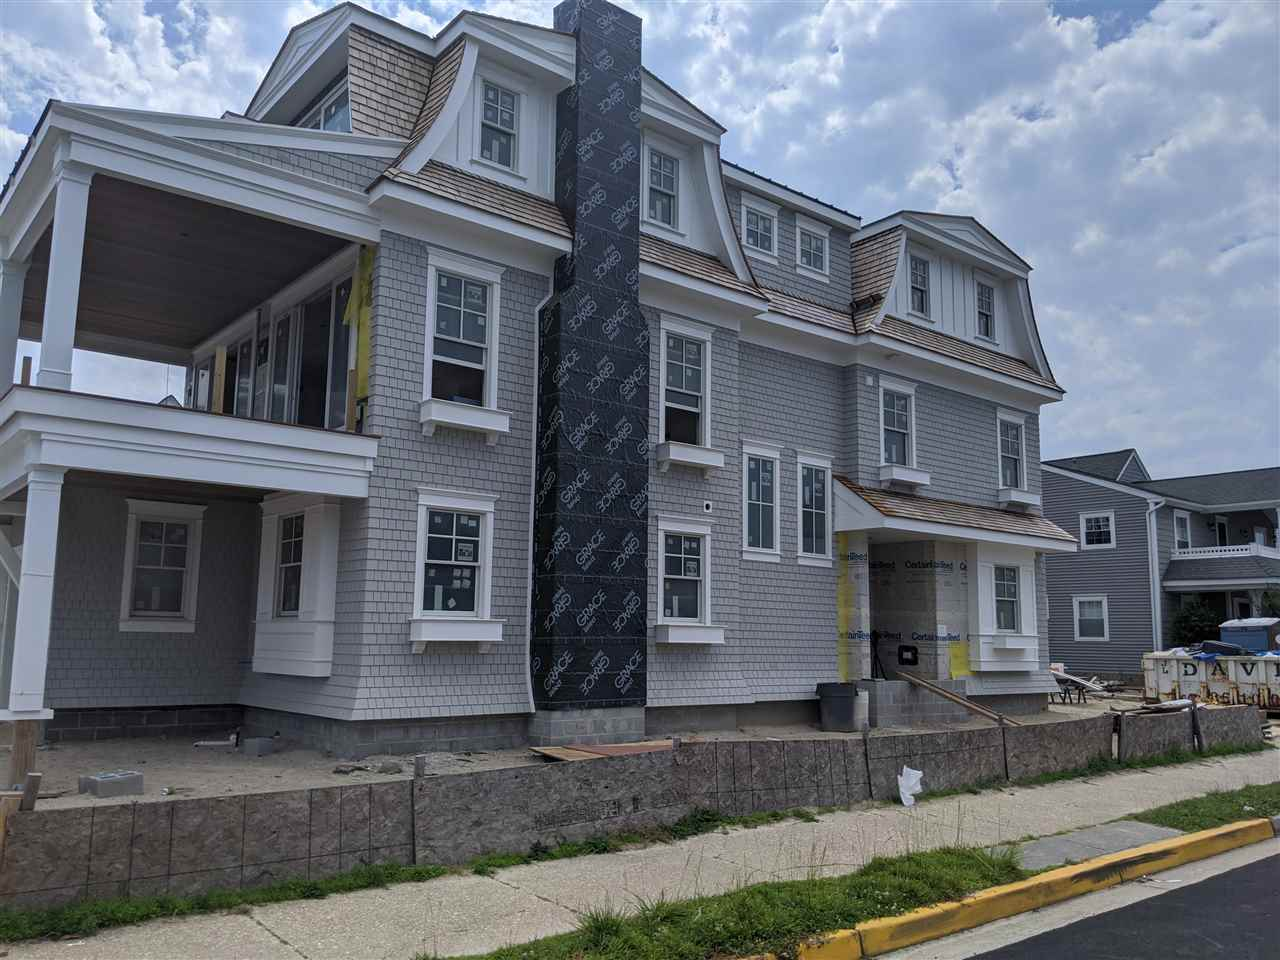 10 W 27th Street, Avalon NJ - Picture 3